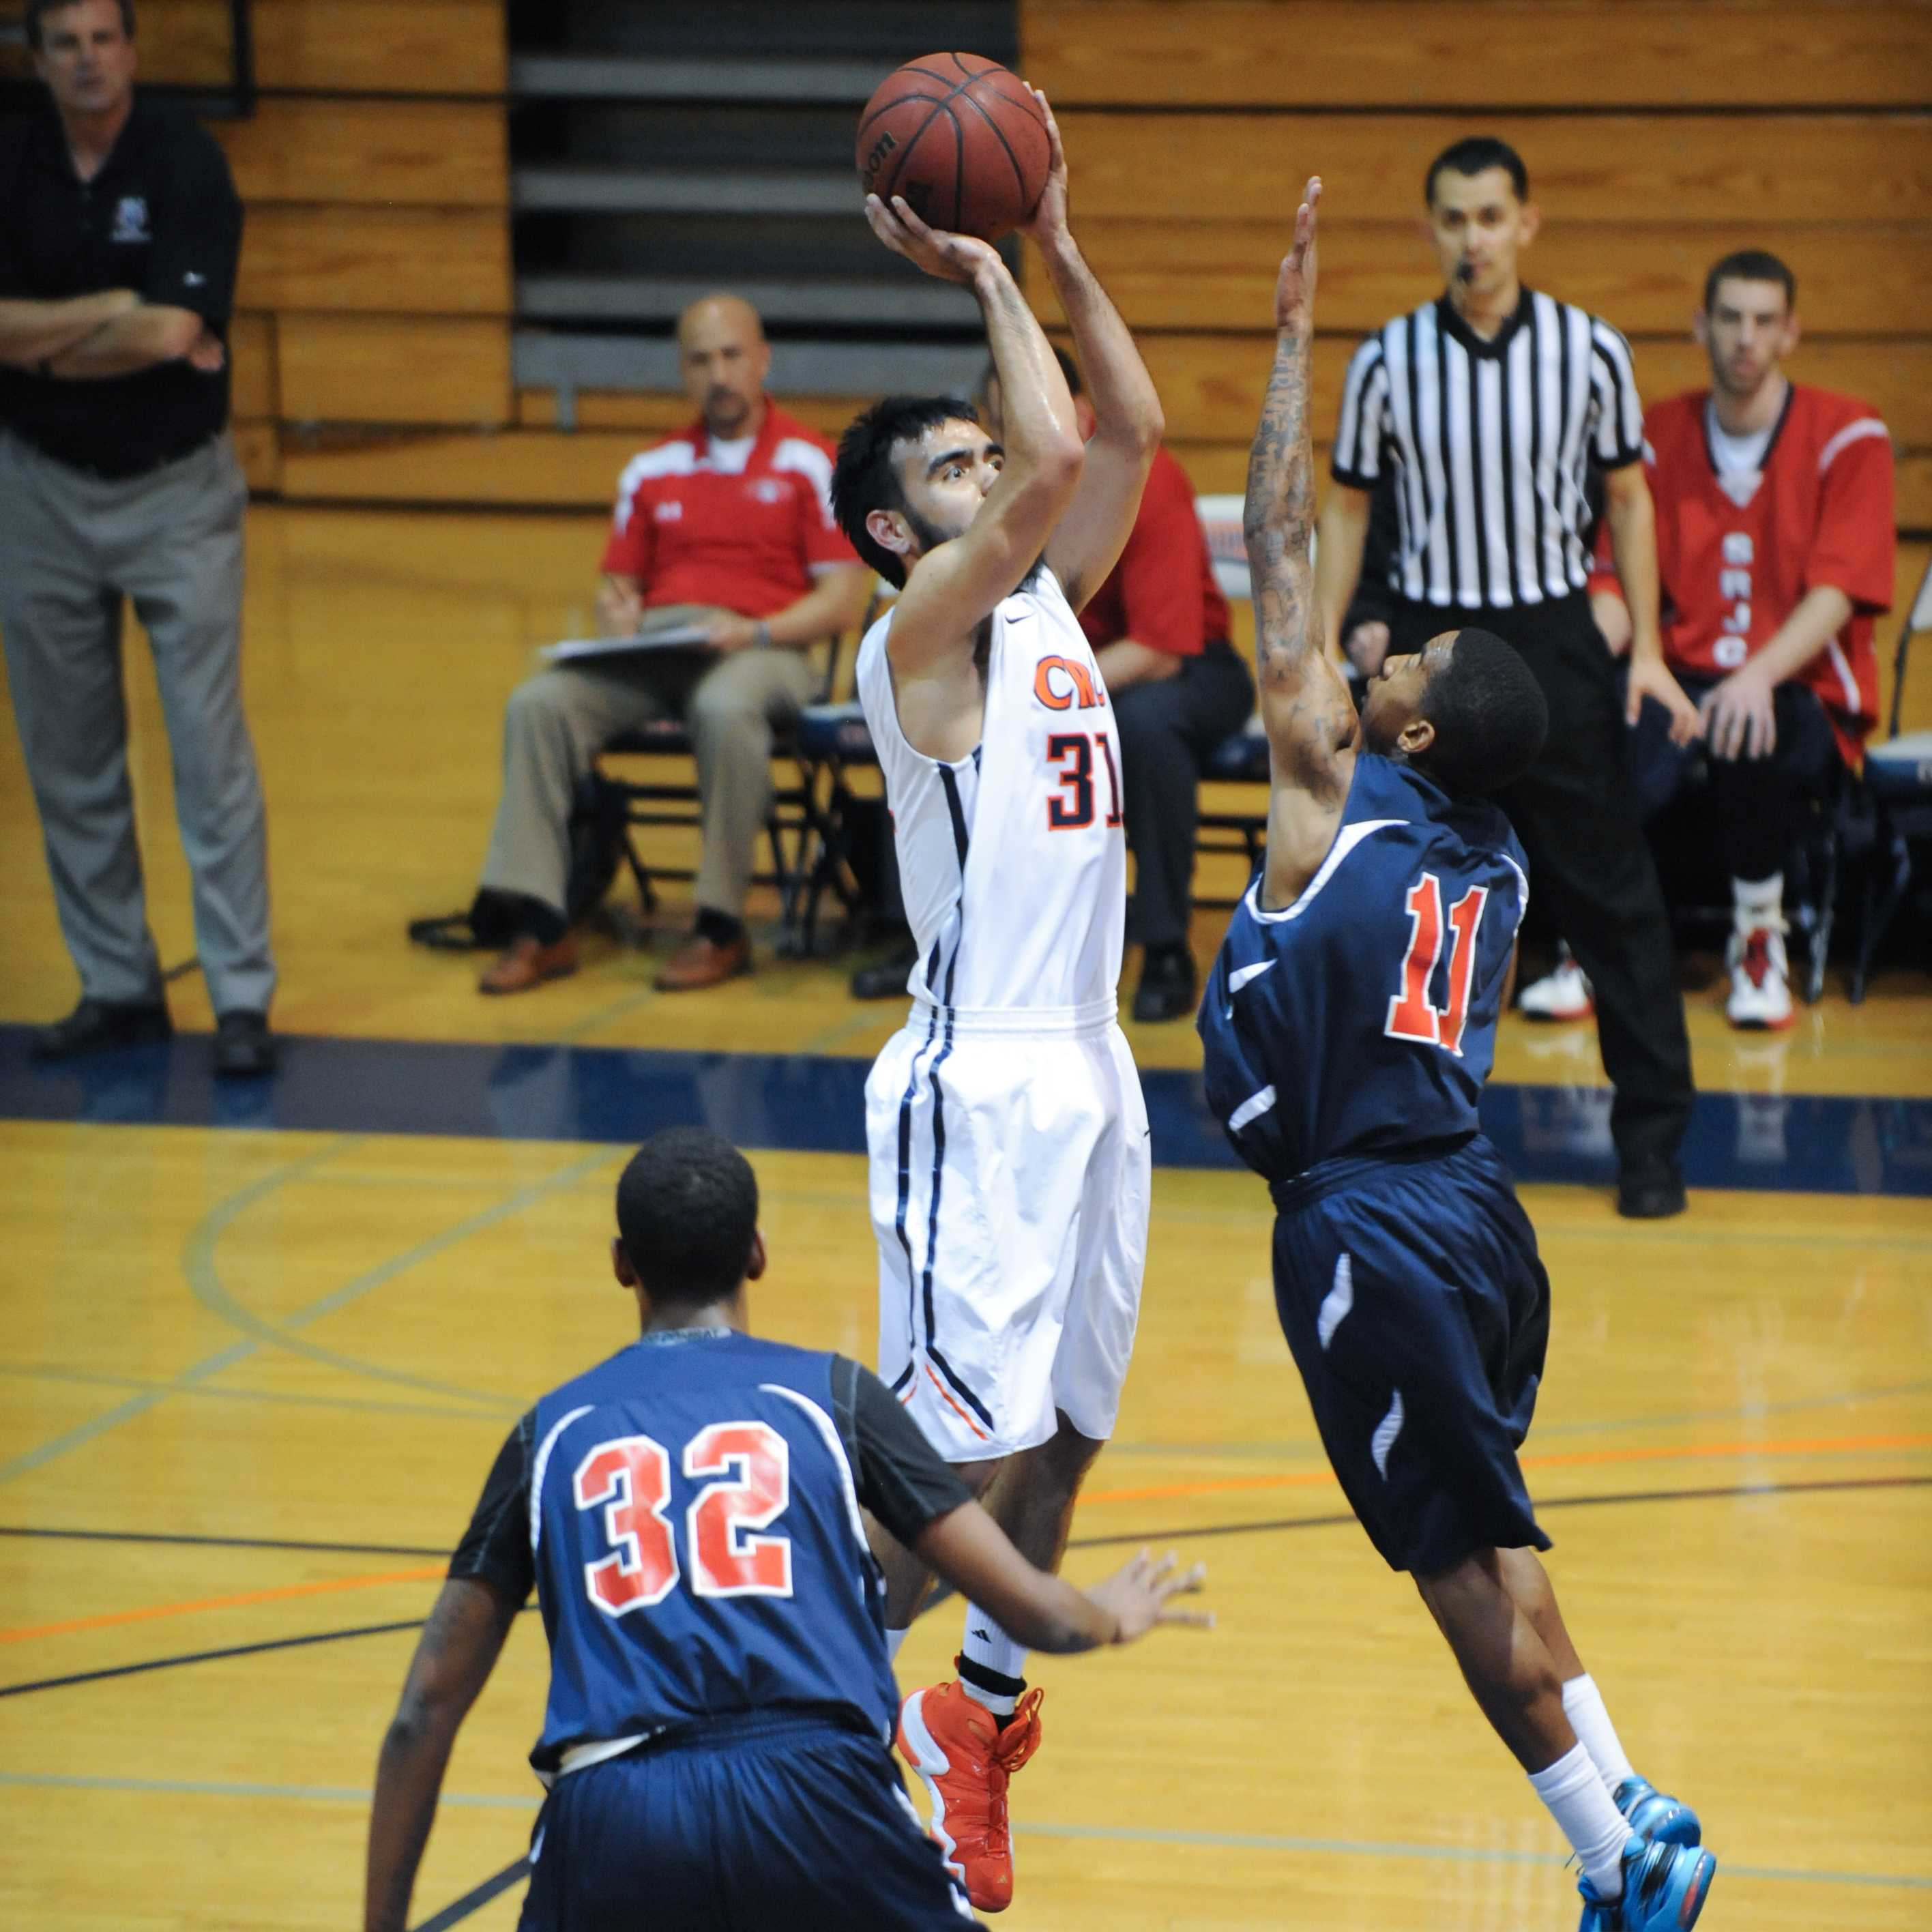 Sophomore guard Josh Dela Cruz playing at the Big 8 conference on Feb. 20.